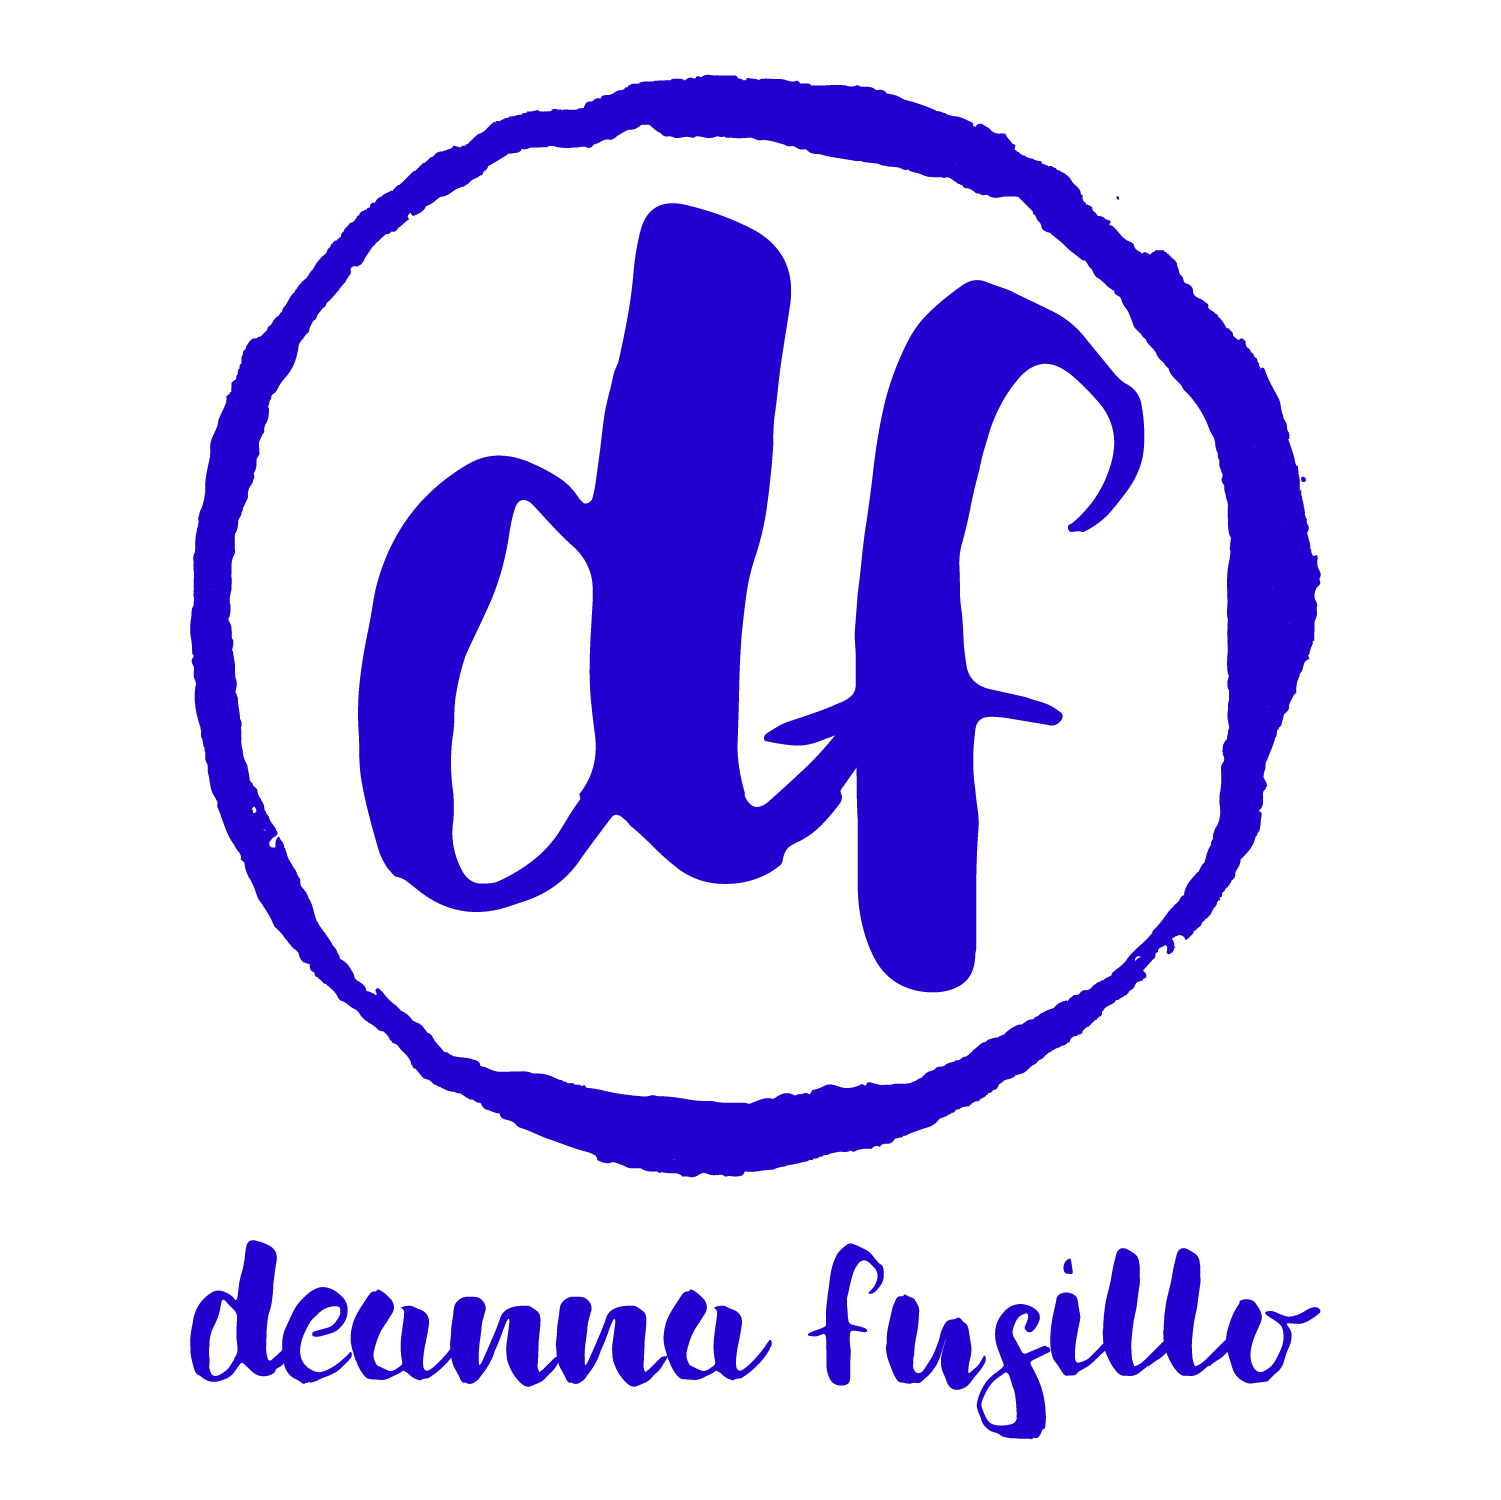 Deanna Fusillo reached out to me to create a logo for her consulting company. We wanted to keep it simple, yet feminine and fun. She geeks out hard on the meanings of colors and I geek out hard on fonts so I went with some text treatment while she led the way on color.